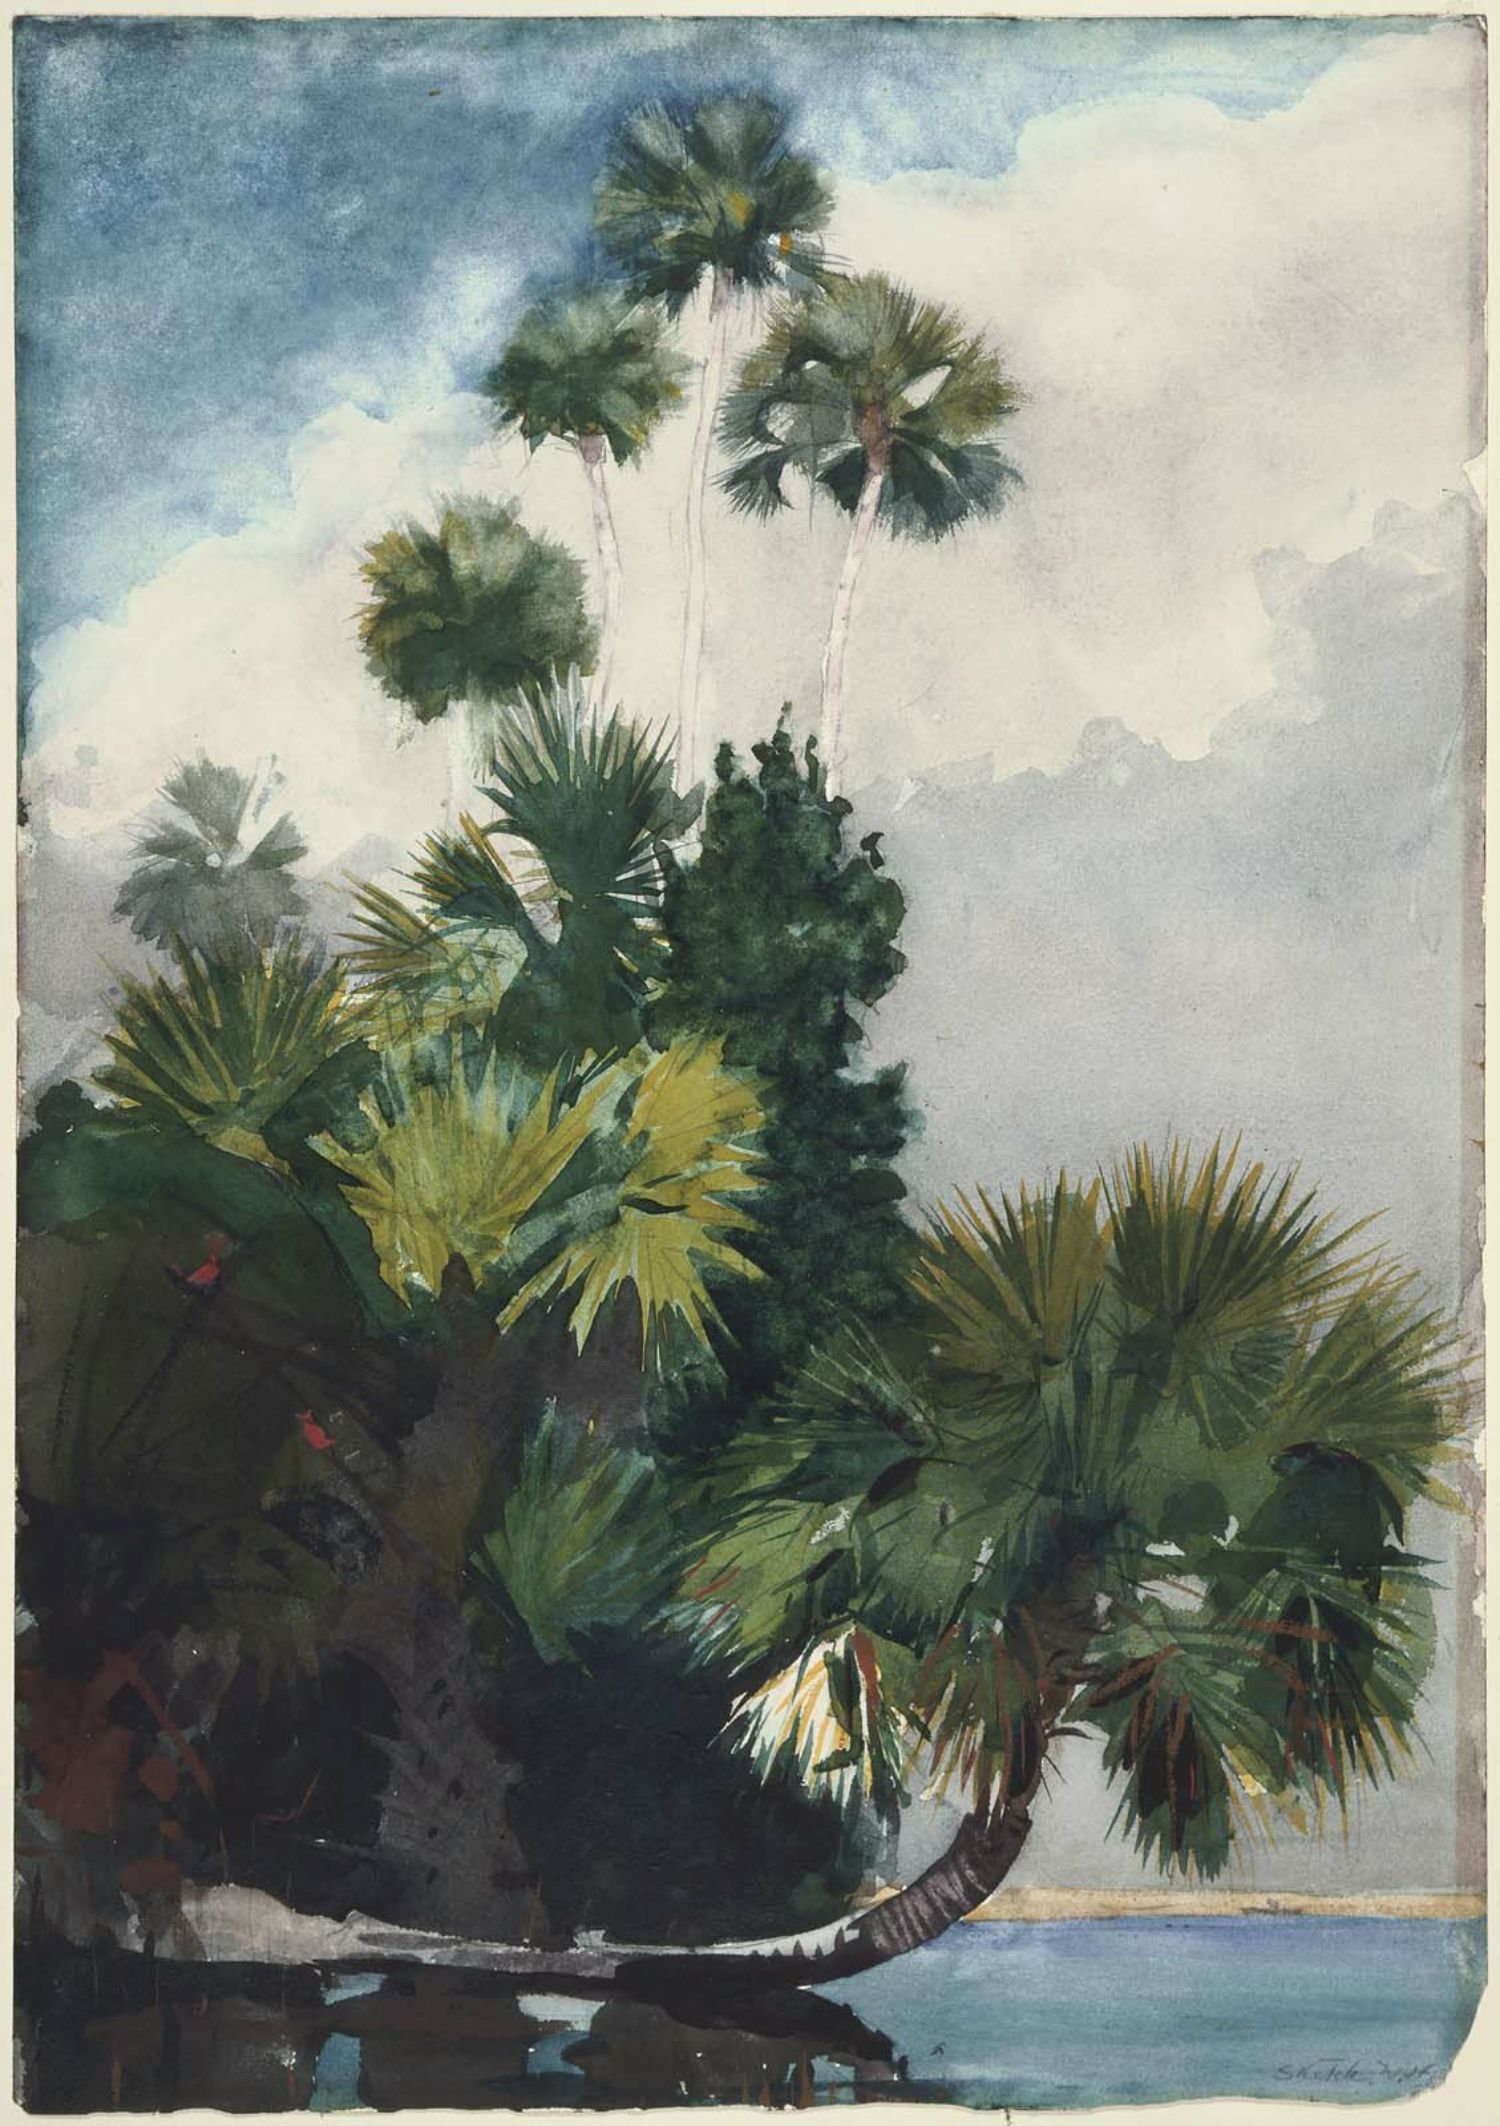 Watercolor artist magazine palm coast fl - The Former Homer S Watercolor Hurricane Bahamas 1898 Above Features A Row Of Wind Blown Palm Trees Under Churning Gray Skies